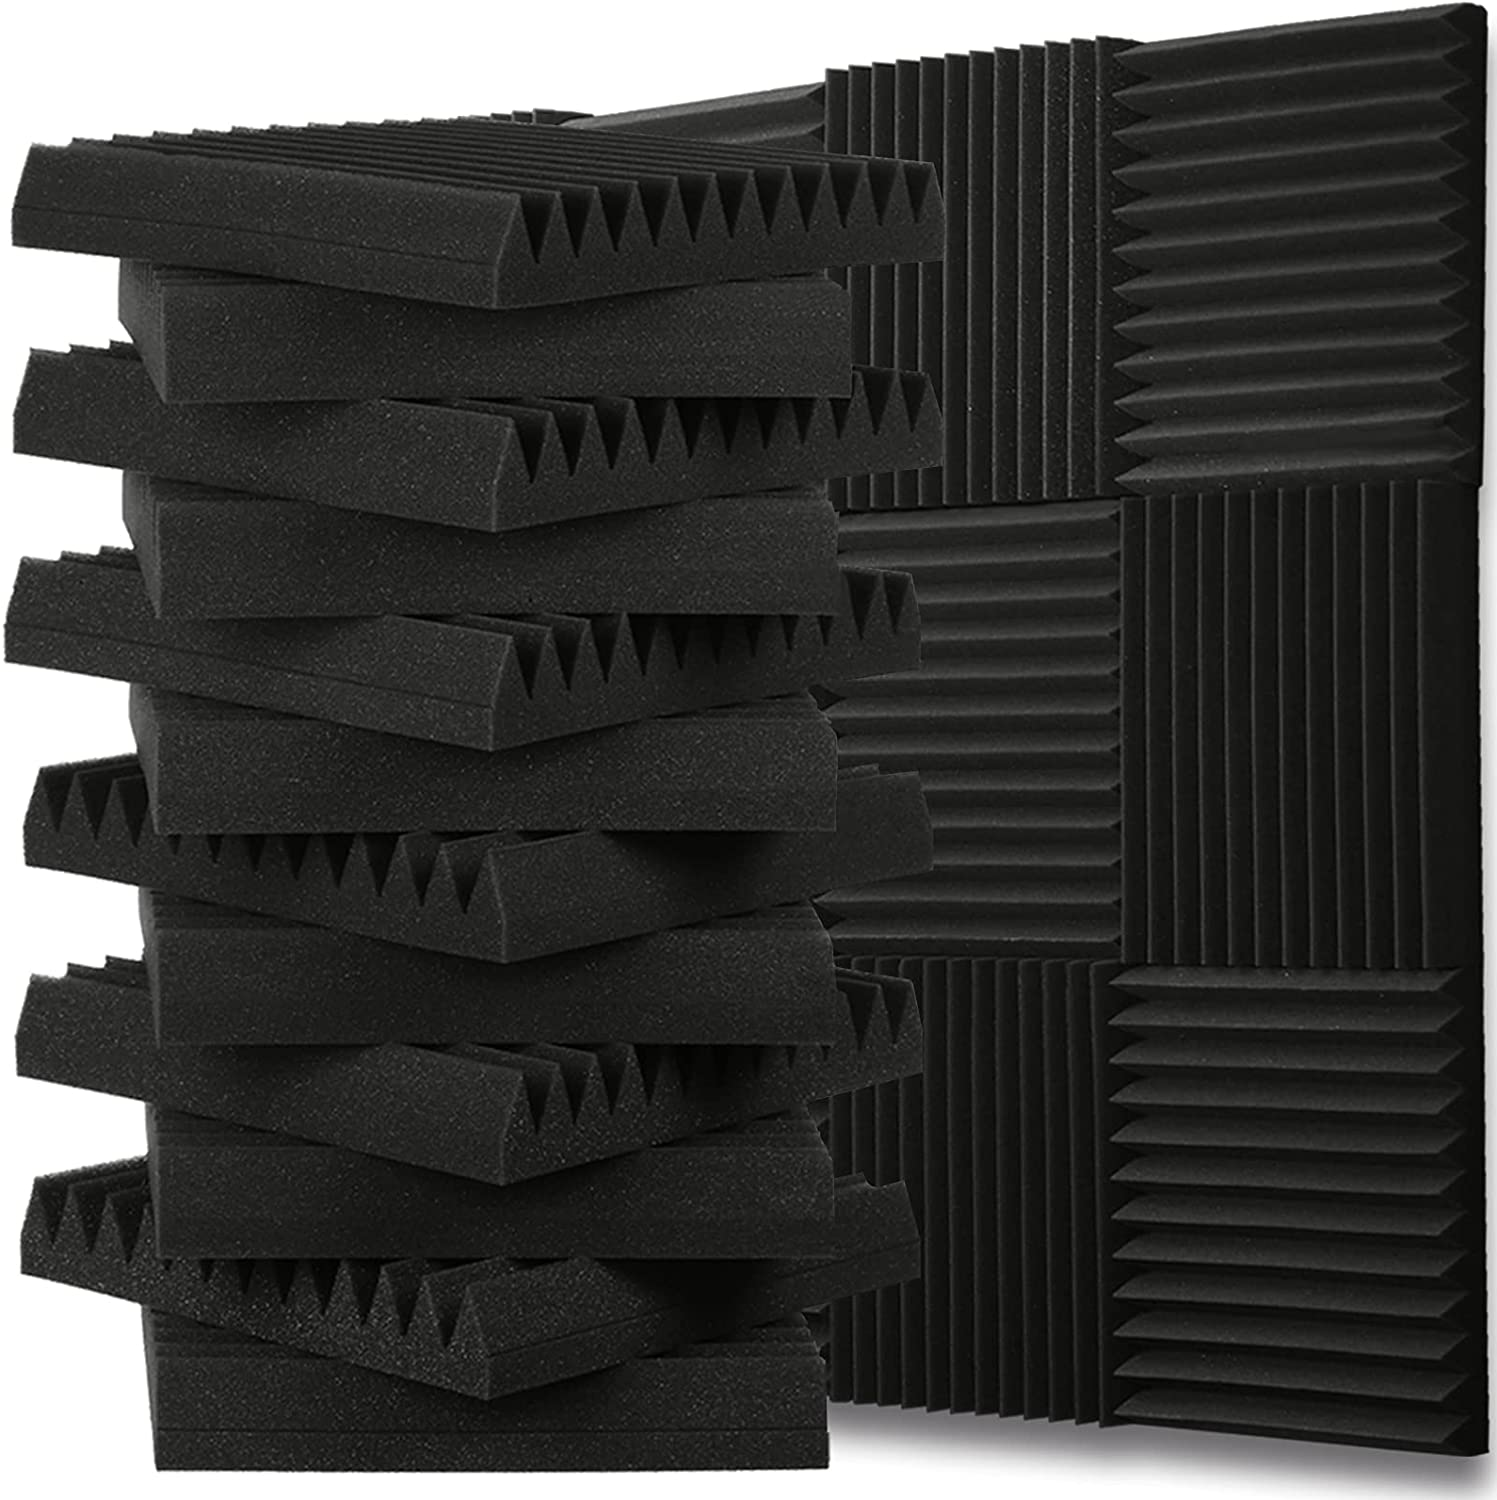 12 Pack 12x12x2 Acoustic Panels Sound Absorbing-Acoustic Foam for Studio Acoustic Treatment, Sound Panels Noise Reducing for Wall and Ceiling,Sound Proof Foam Panels for Studio,Office,Home Theater